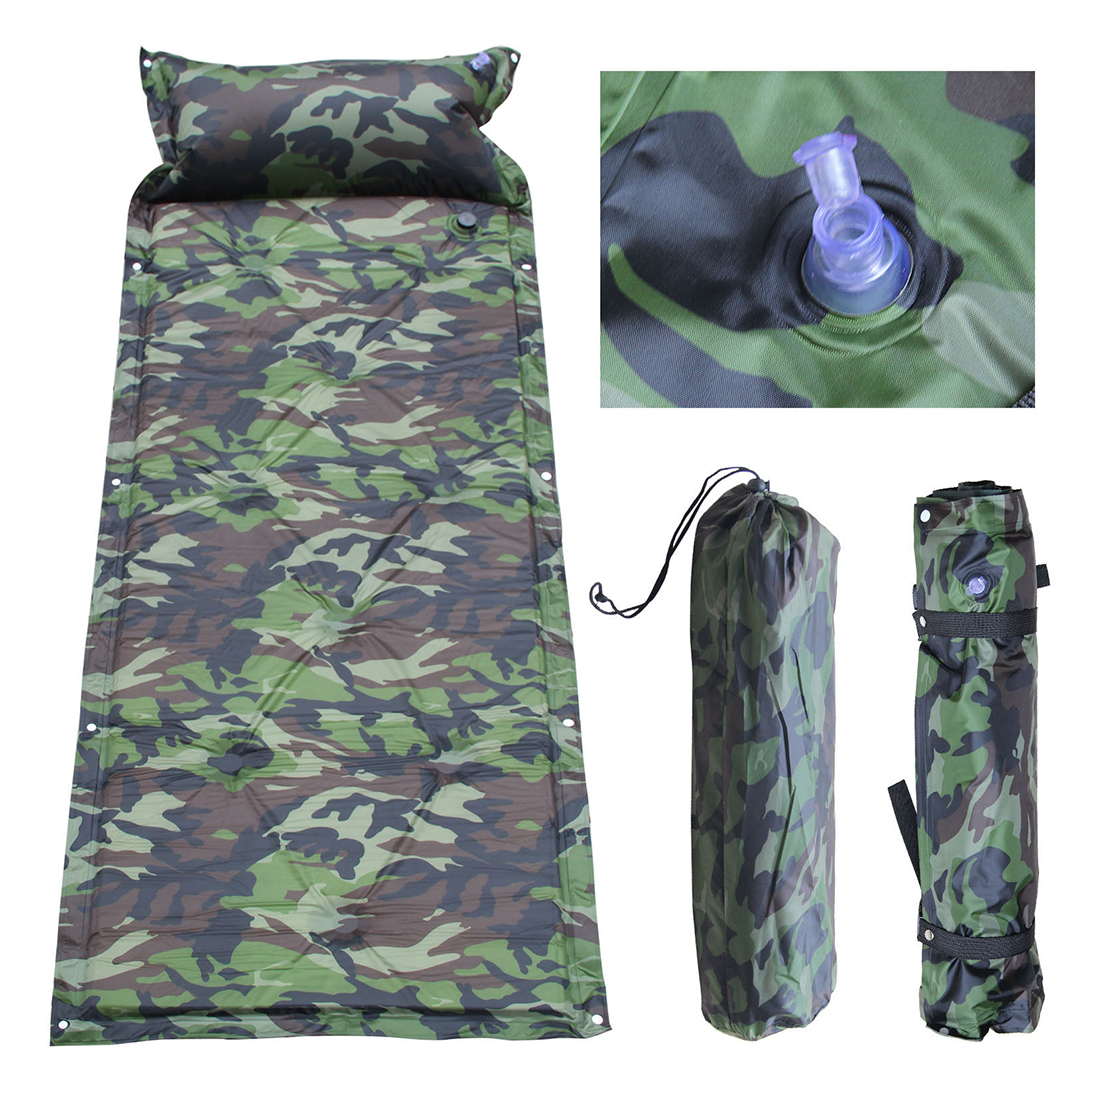 oreiller camping JHO Autogonflant Camping Rouleau Tapis/Pad Lit Gonflable Oreiller  oreiller camping